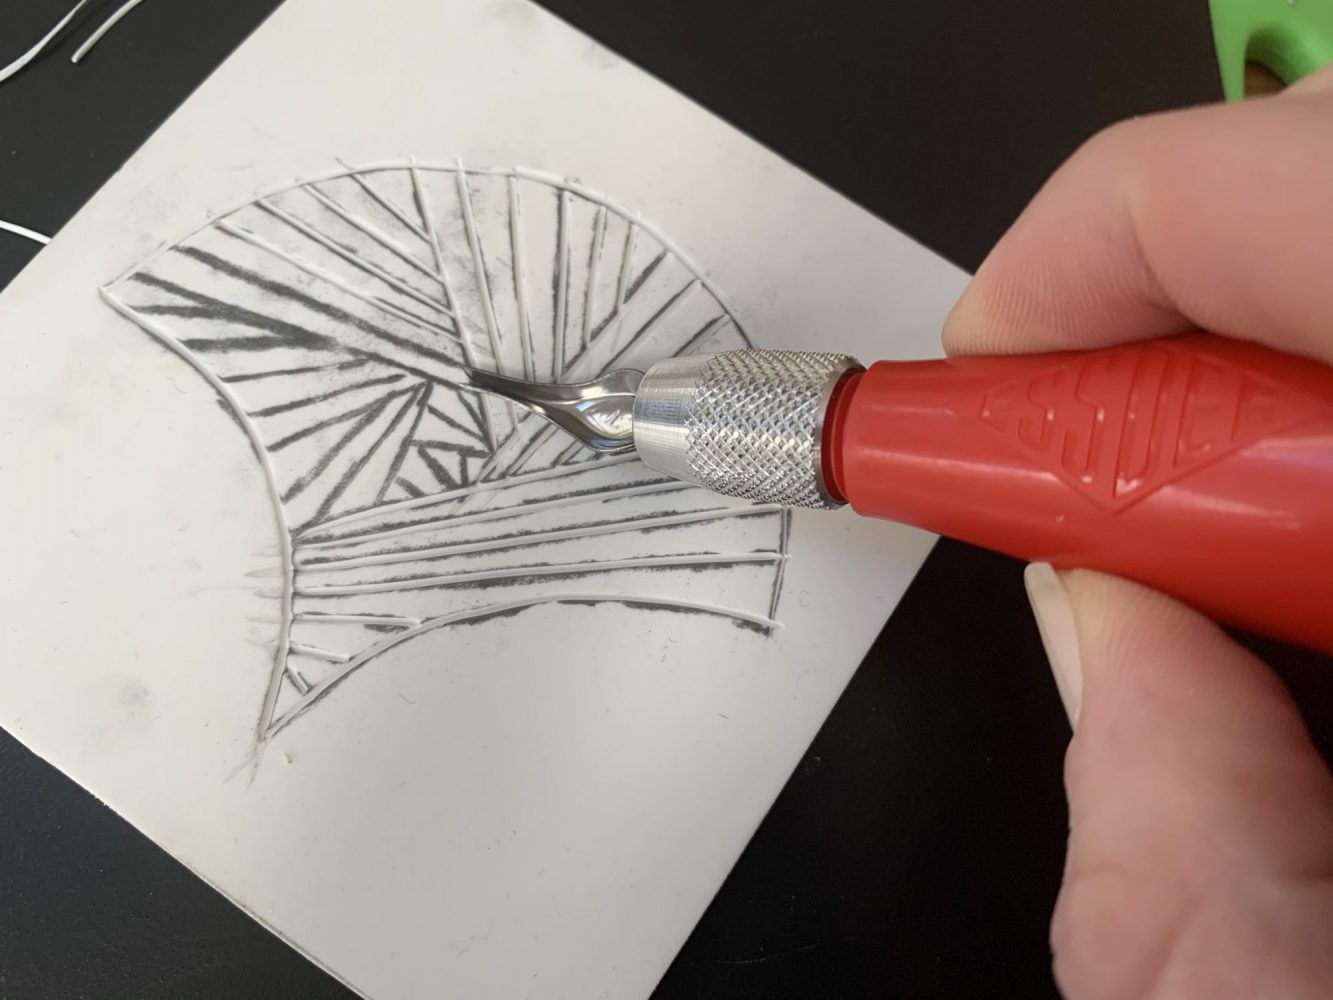 Lino cutter being used to carve edge of fan design